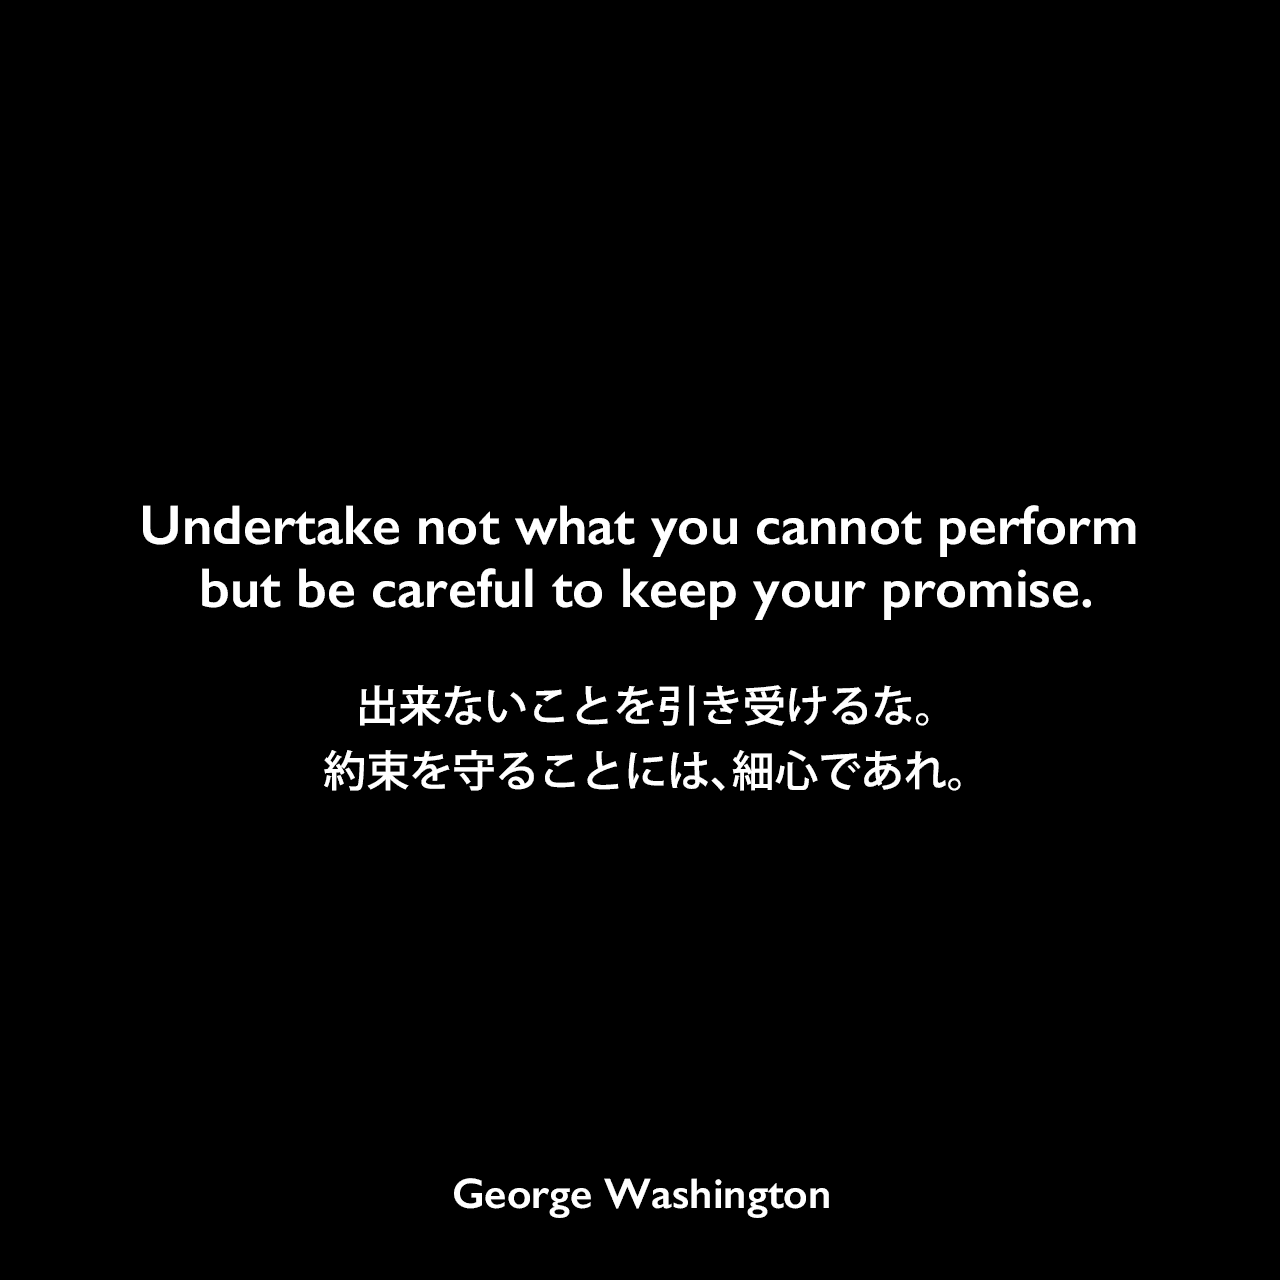 Undertake not what you cannot perform but be careful to keep your promise.出来ないことを引き受けるな。約束を守ることには、細心であれ。George Washington